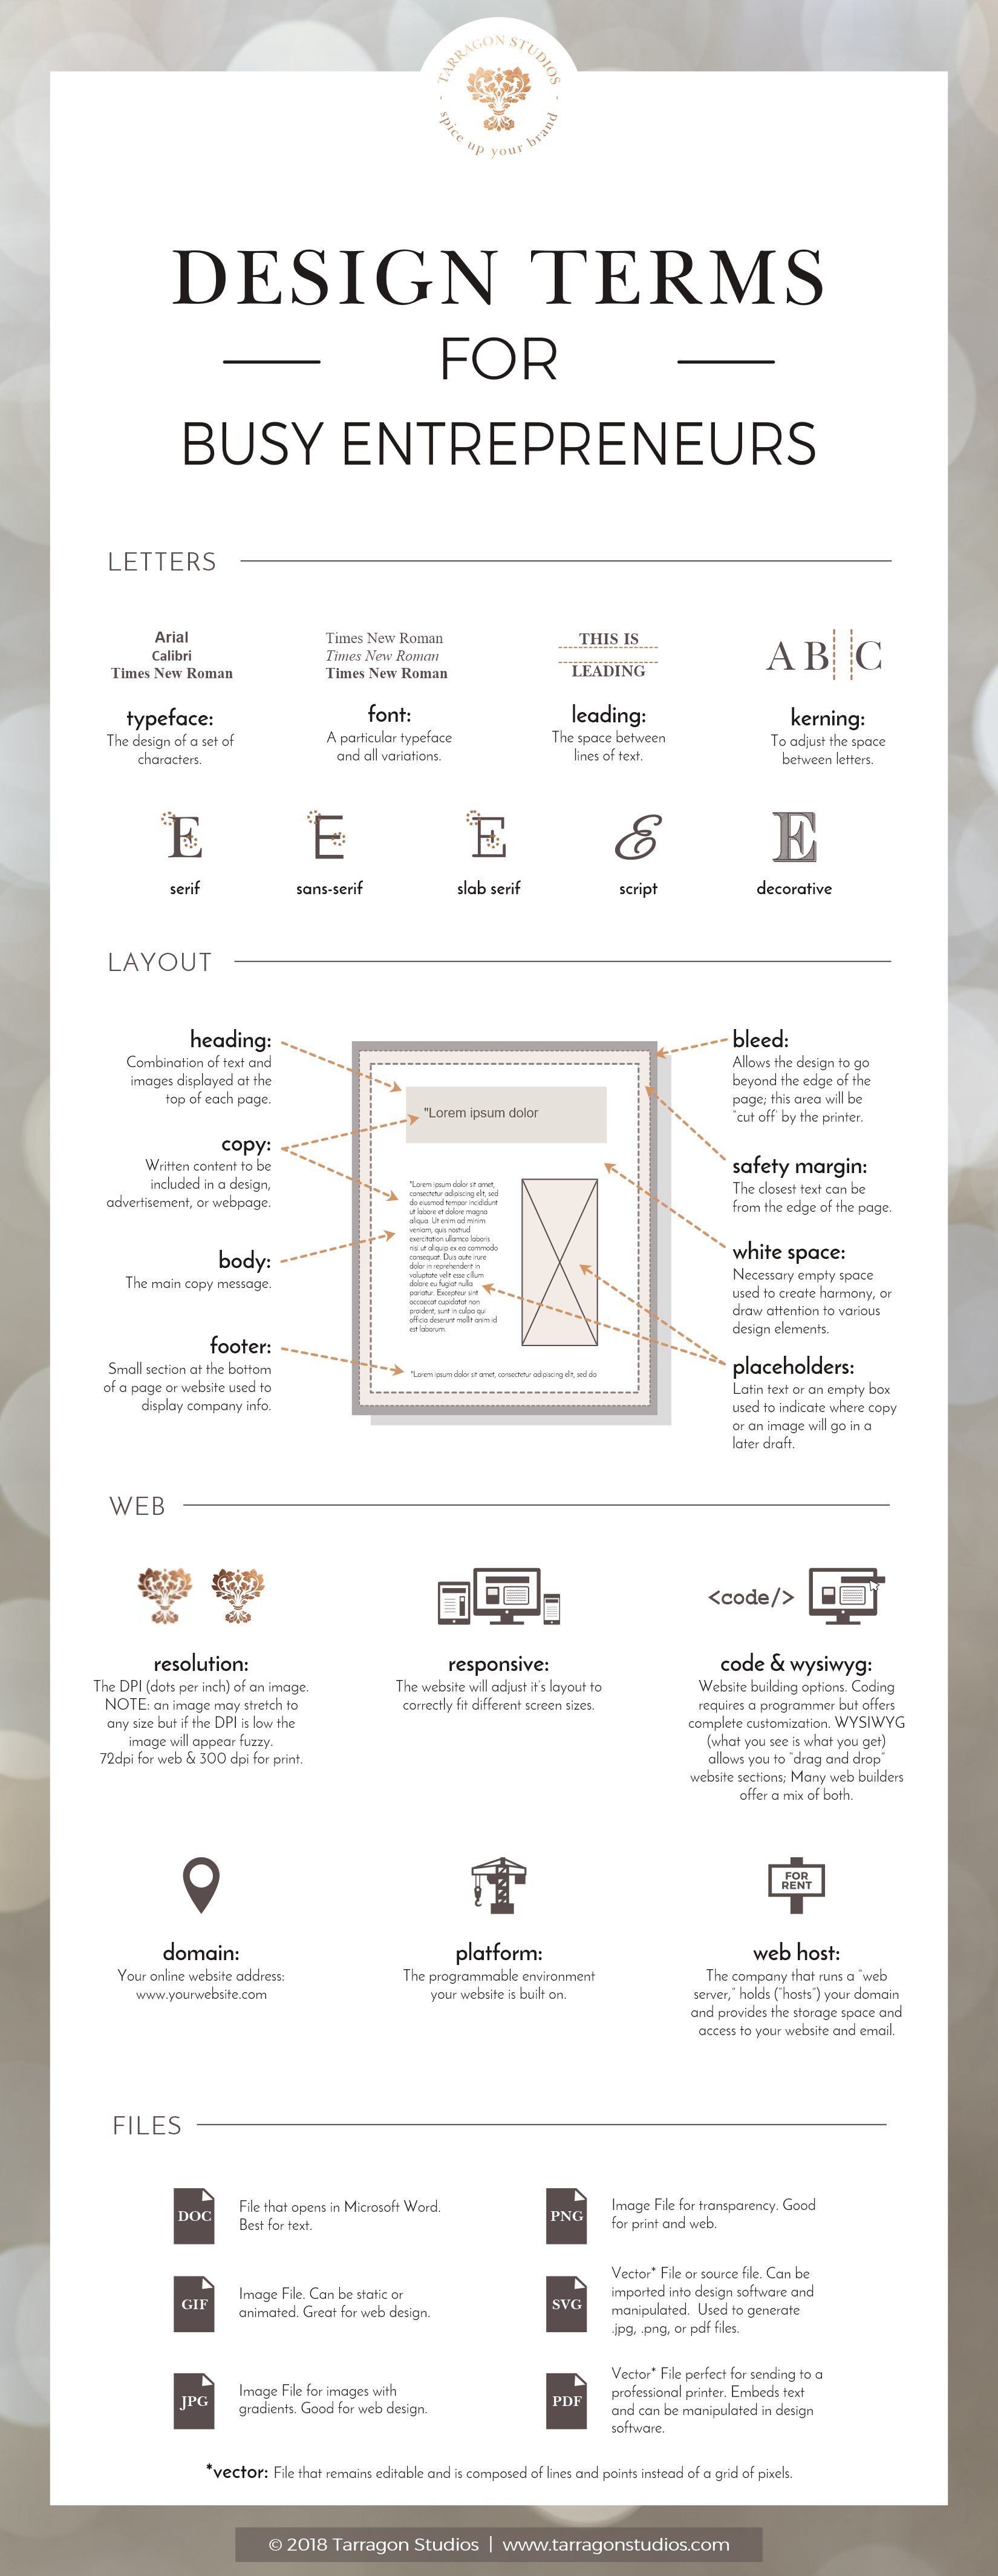 design terms for busy entrepreneurs to effectively communicate with your designer or printer